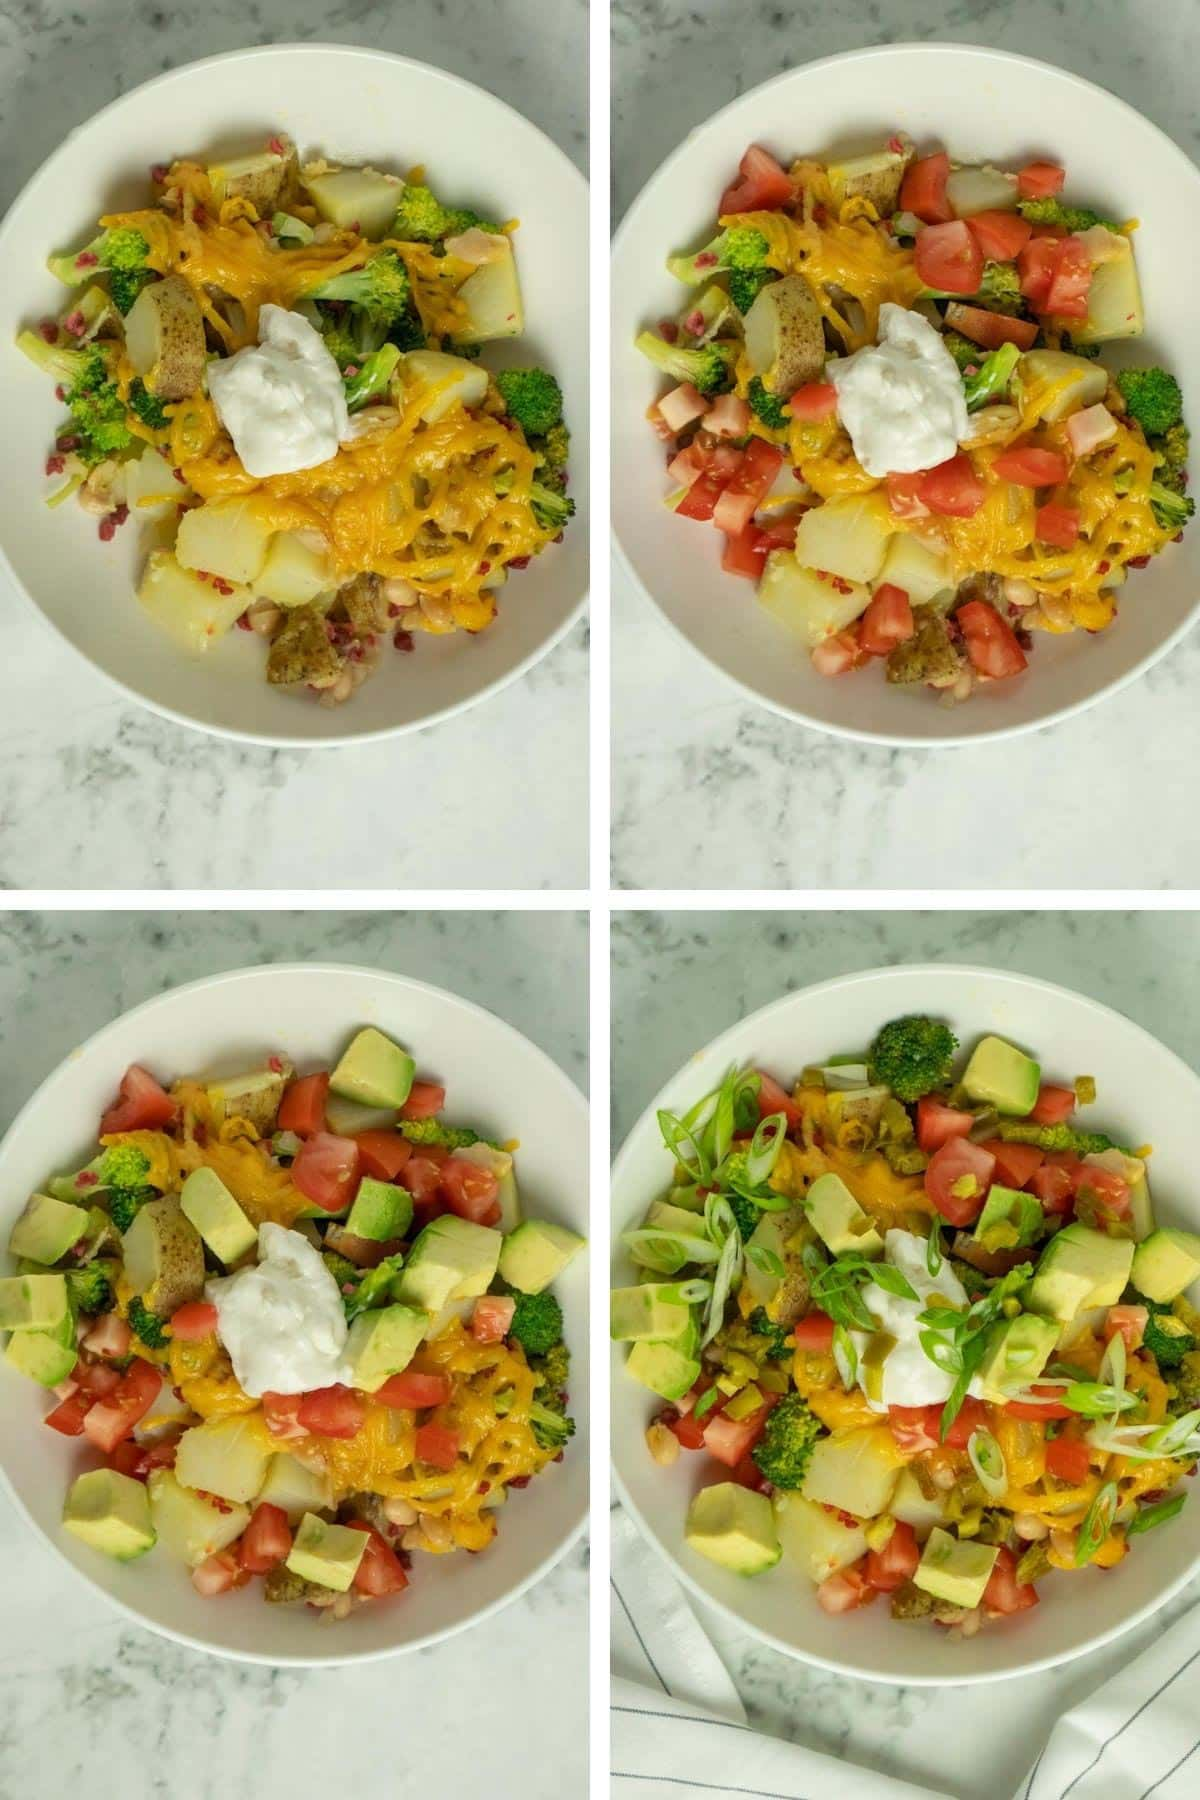 image collage showing the casserole in a dish with different toppings layered on